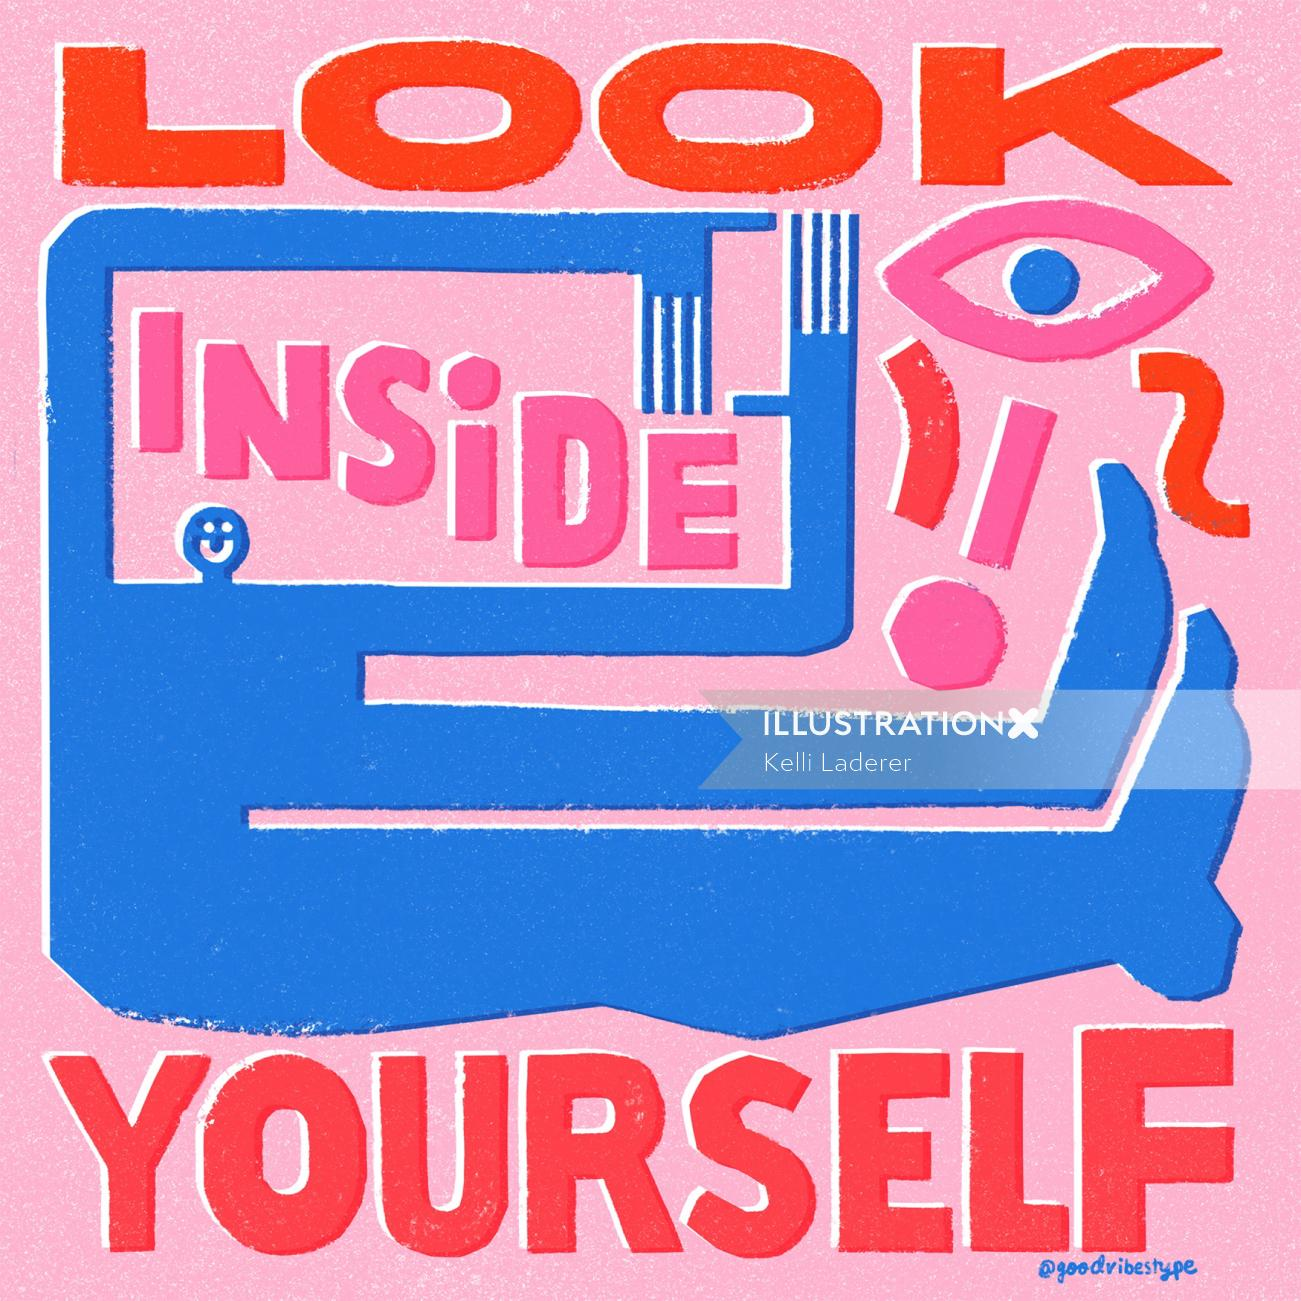 Look inside yourself storytelling illustration